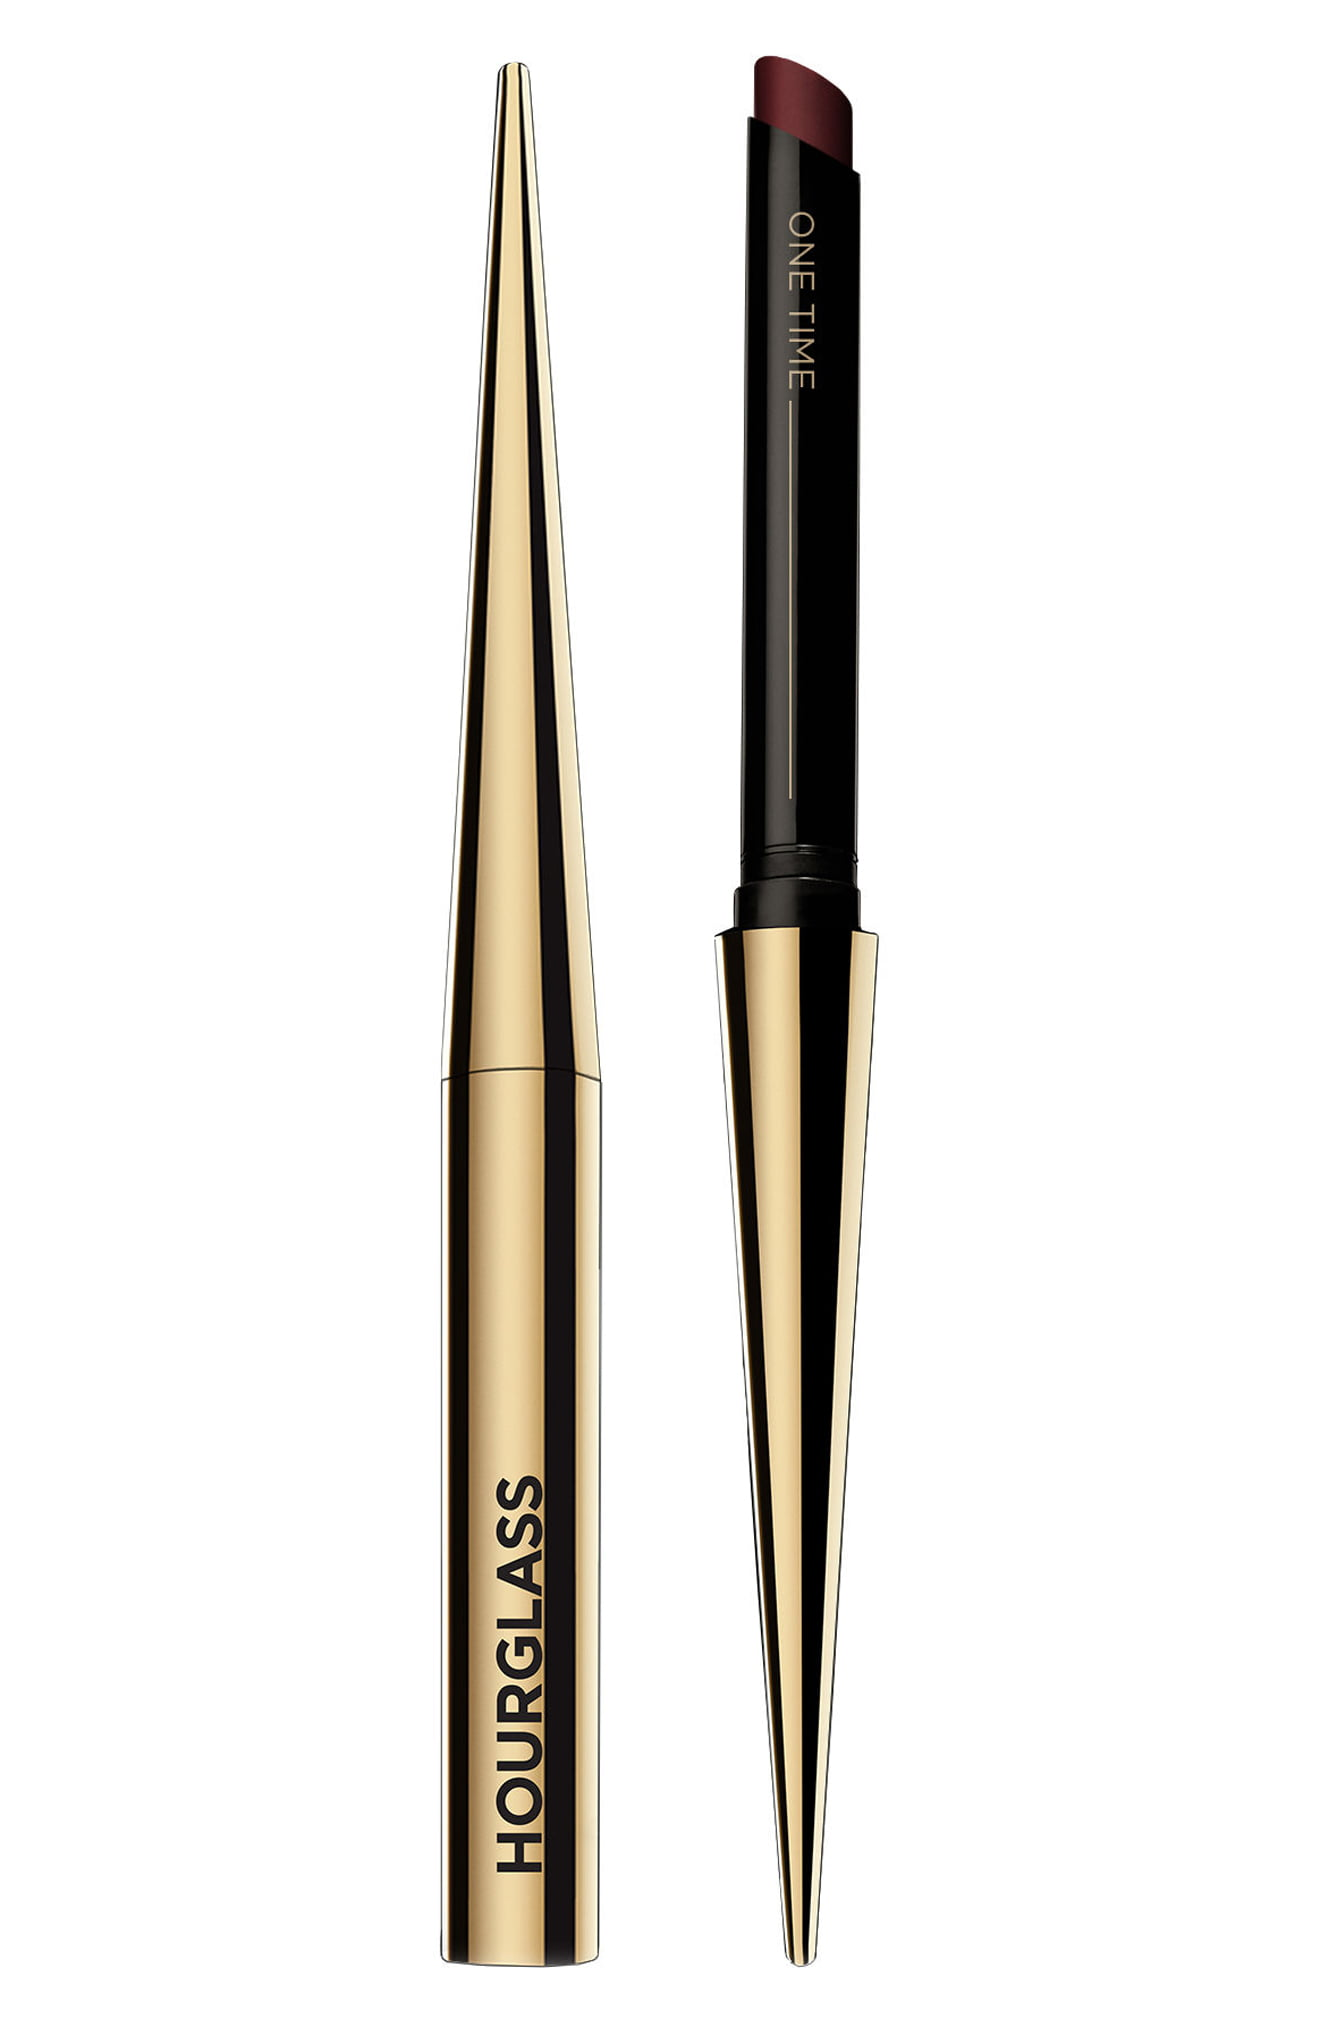 Confession Ultra Slim High Intensity Refillable Lipstick - One Time